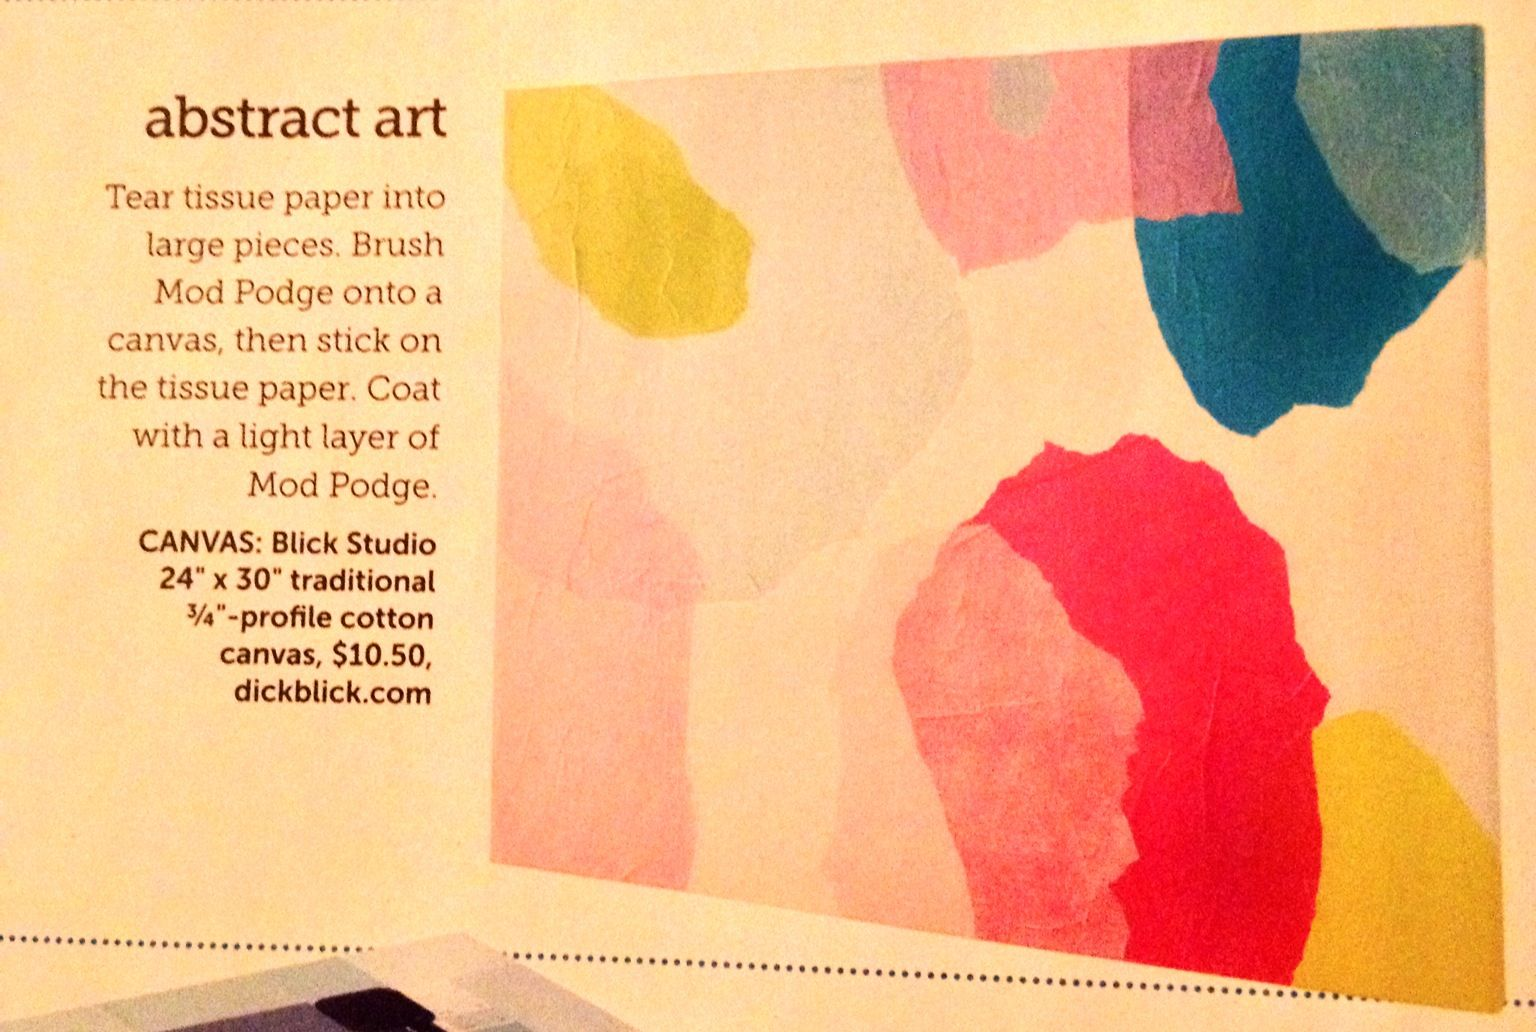 DIY abstract art with tissue paper & mod podge on canvas in May 2013 ...